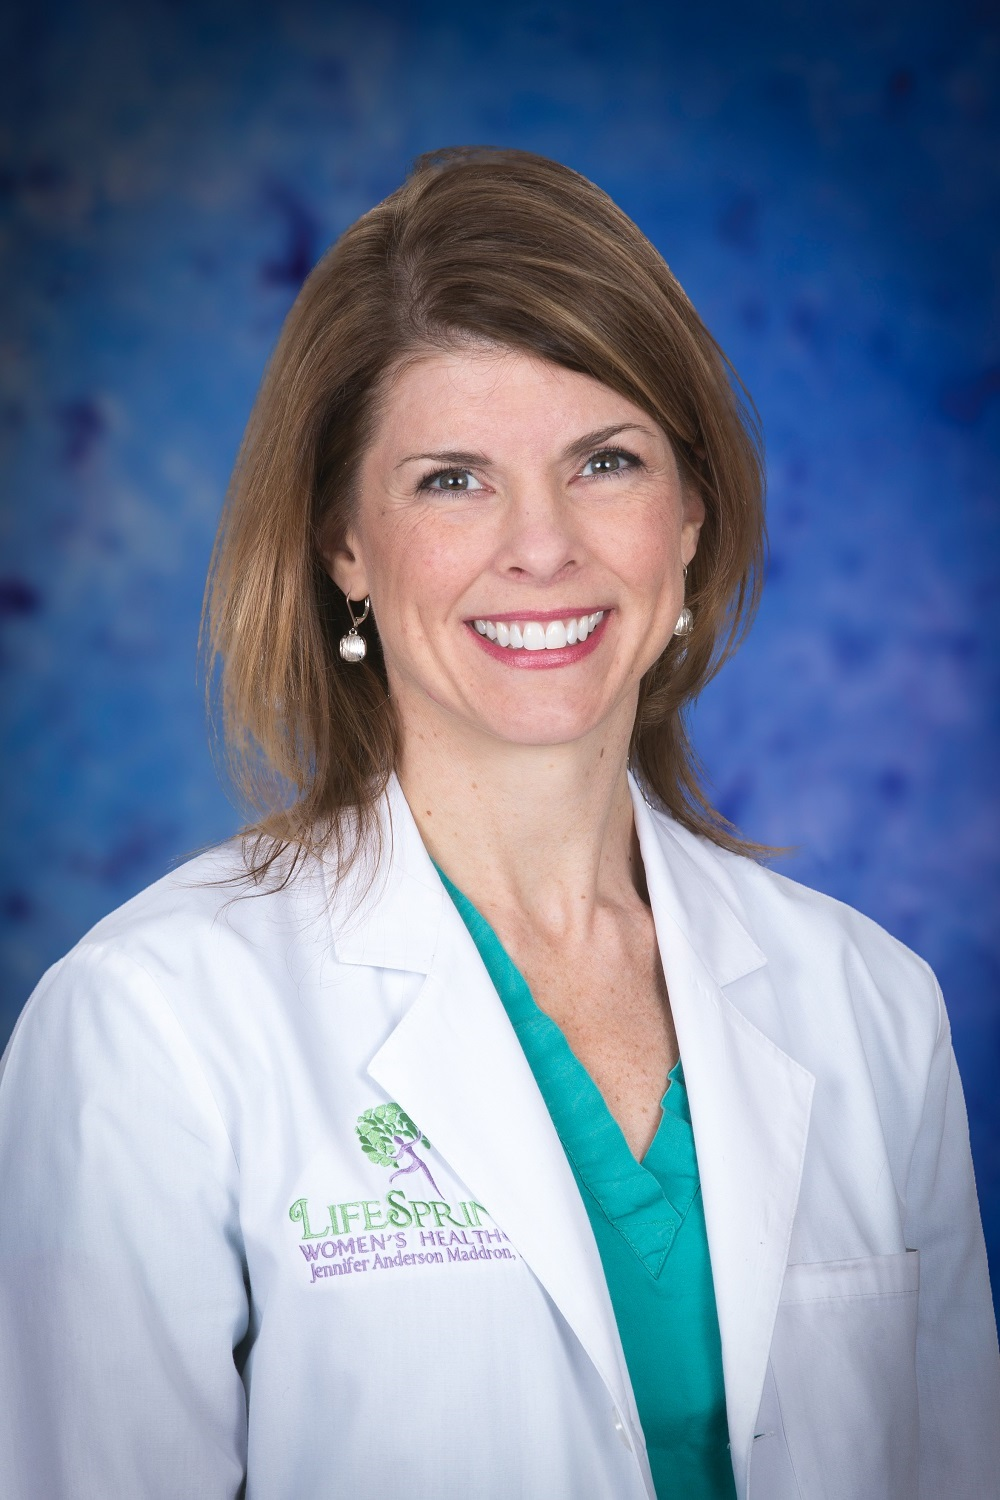 Jennifer Anderson Maddron, MD of the OBGYN Team at LifeSprings Women's Healthcare